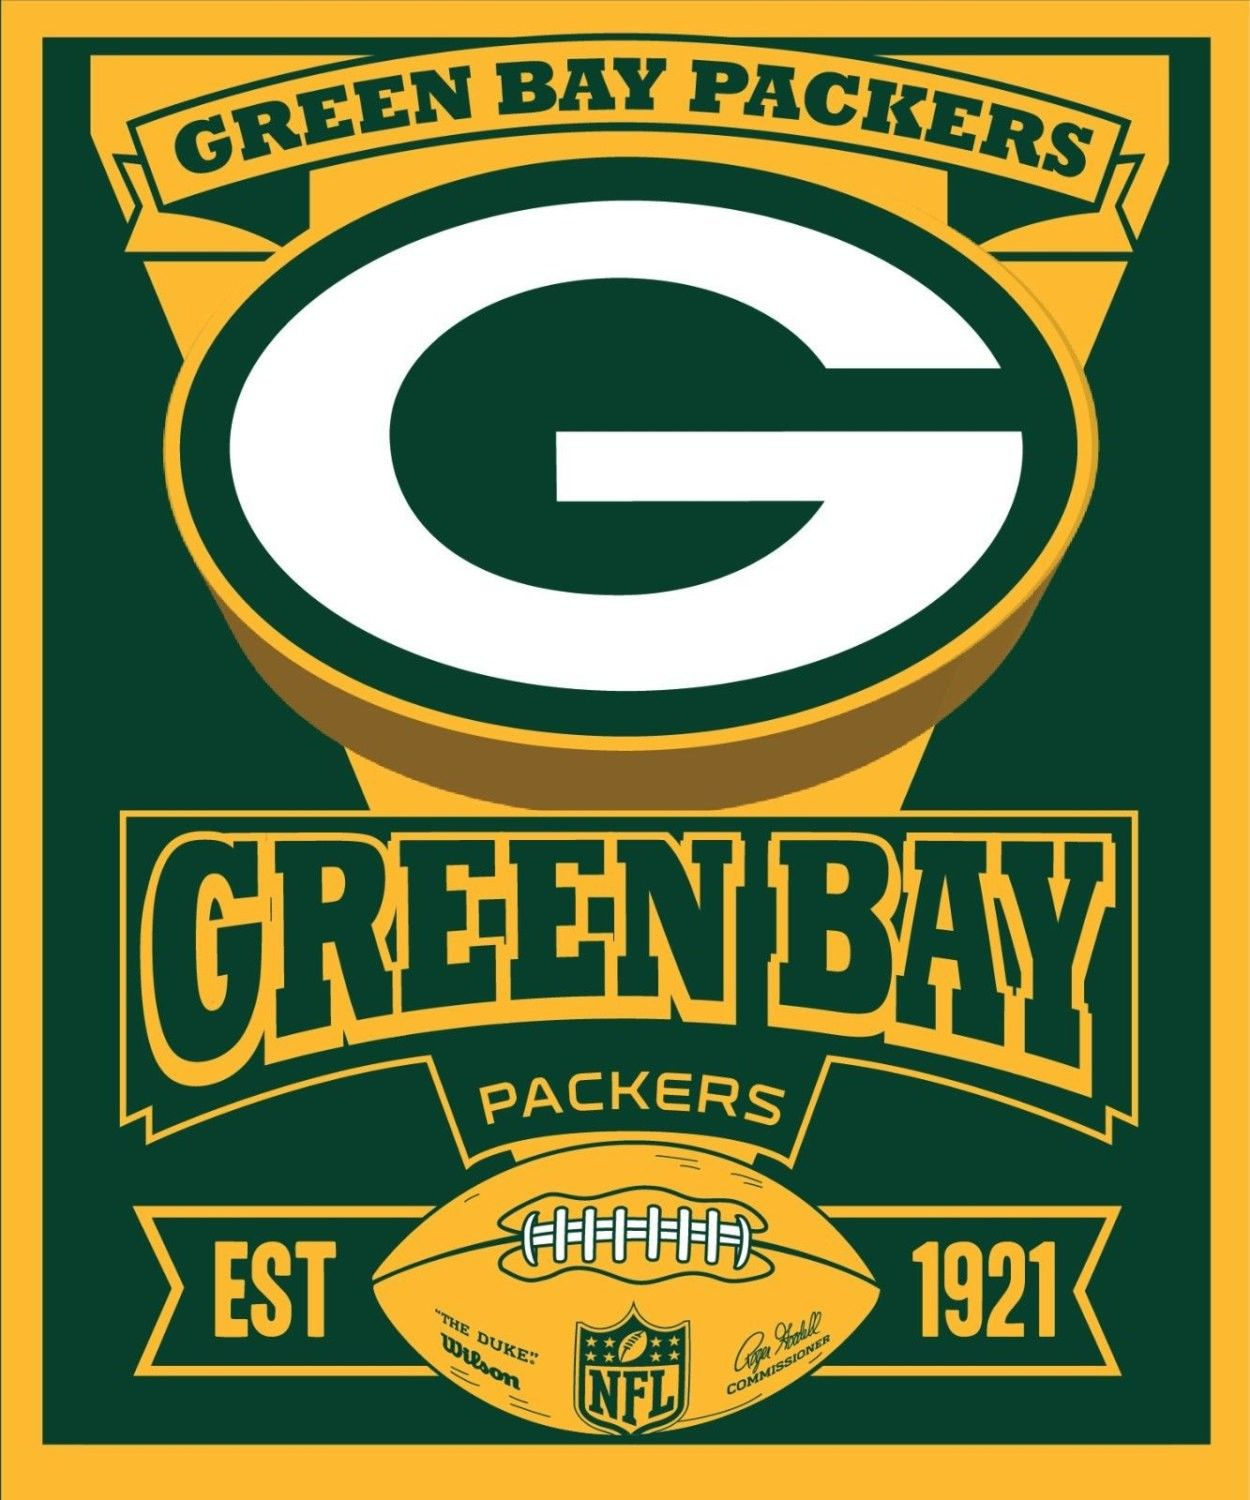 Green Bay Packers Posters Google Search Green Bay Packers